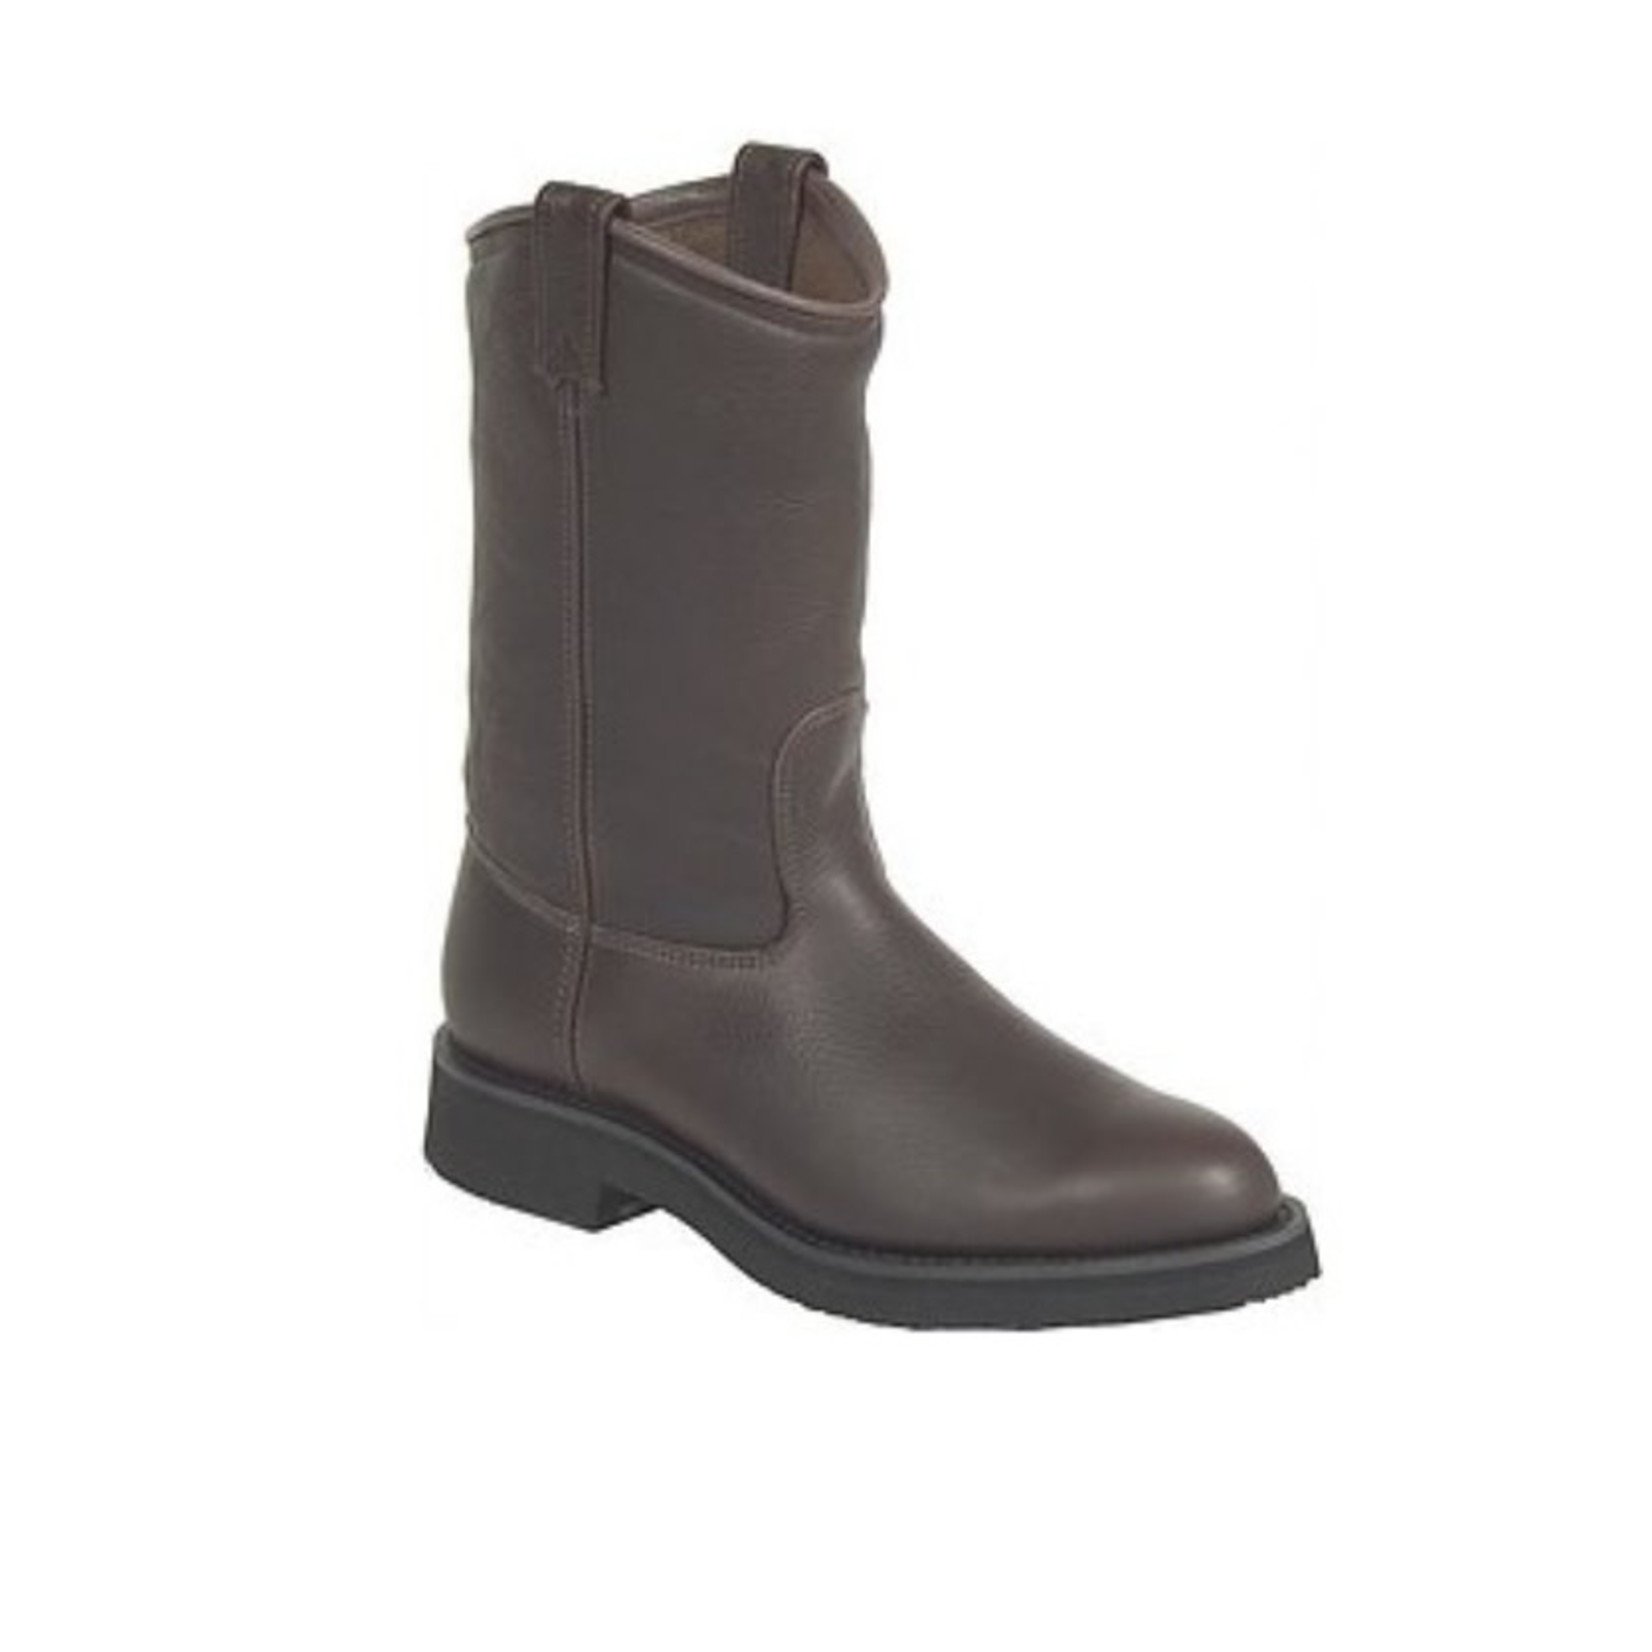 """Canada West Canada West Men's Brahma 12"""" Bark Stormy Insulated Lined Cowboy Boot 8189"""